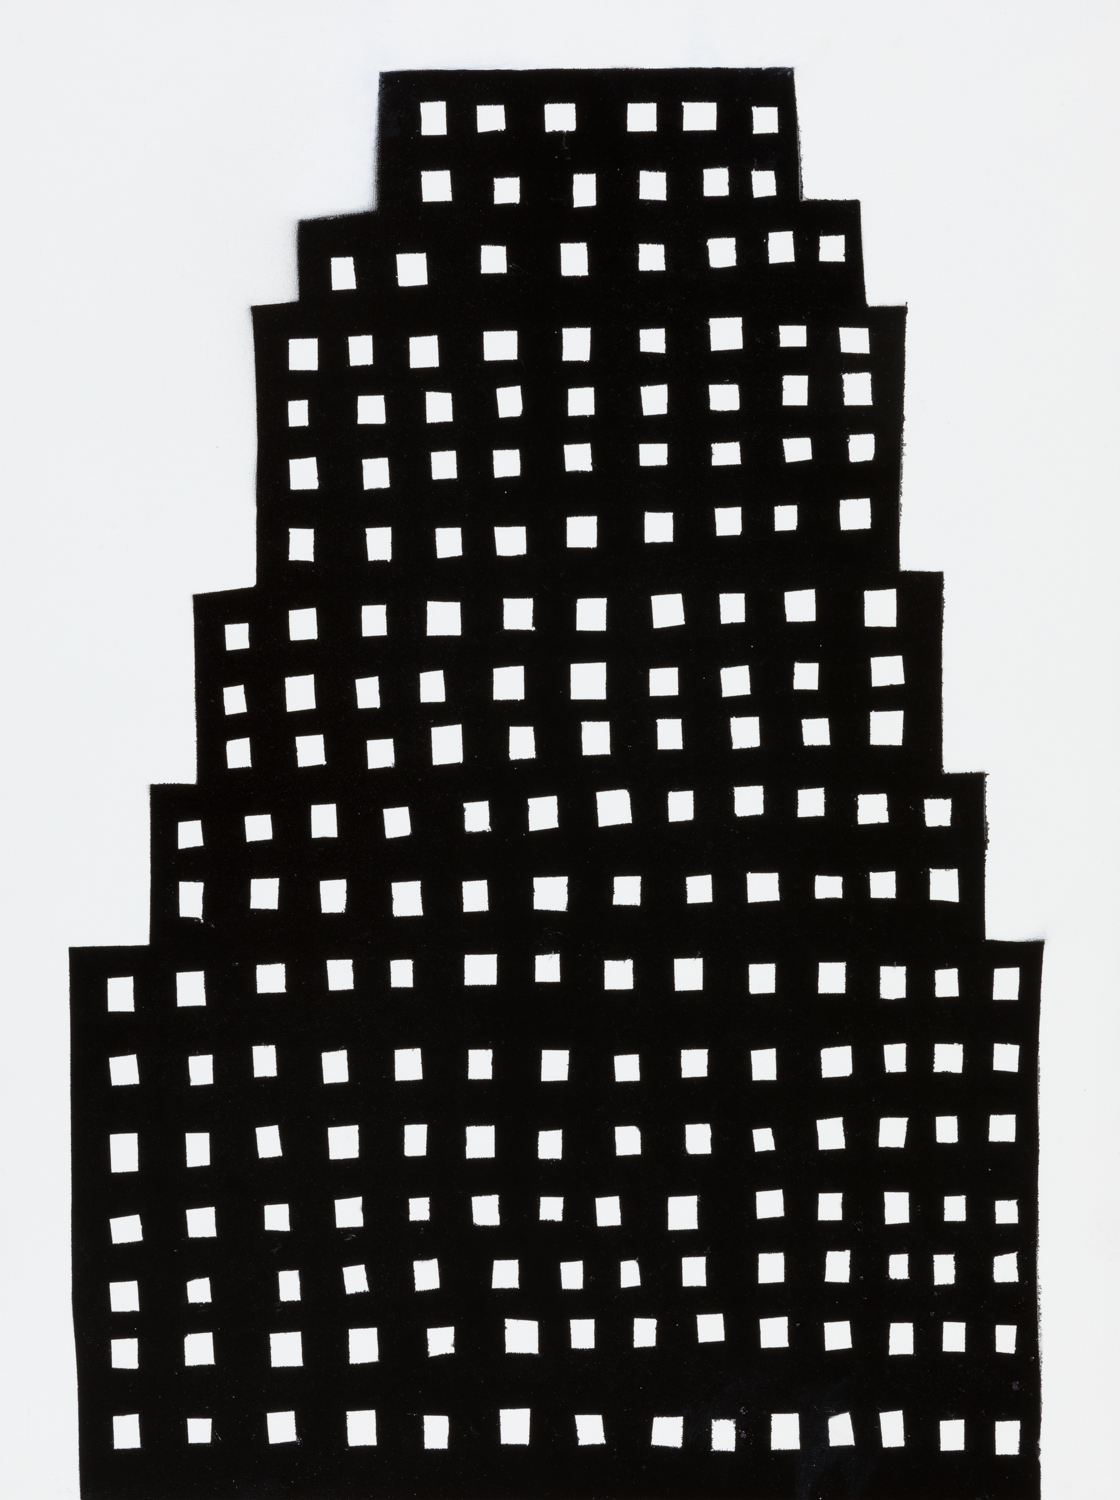 NIGHT BUILDING 13 , 2018 spray paint on panel 24 x 18 inches